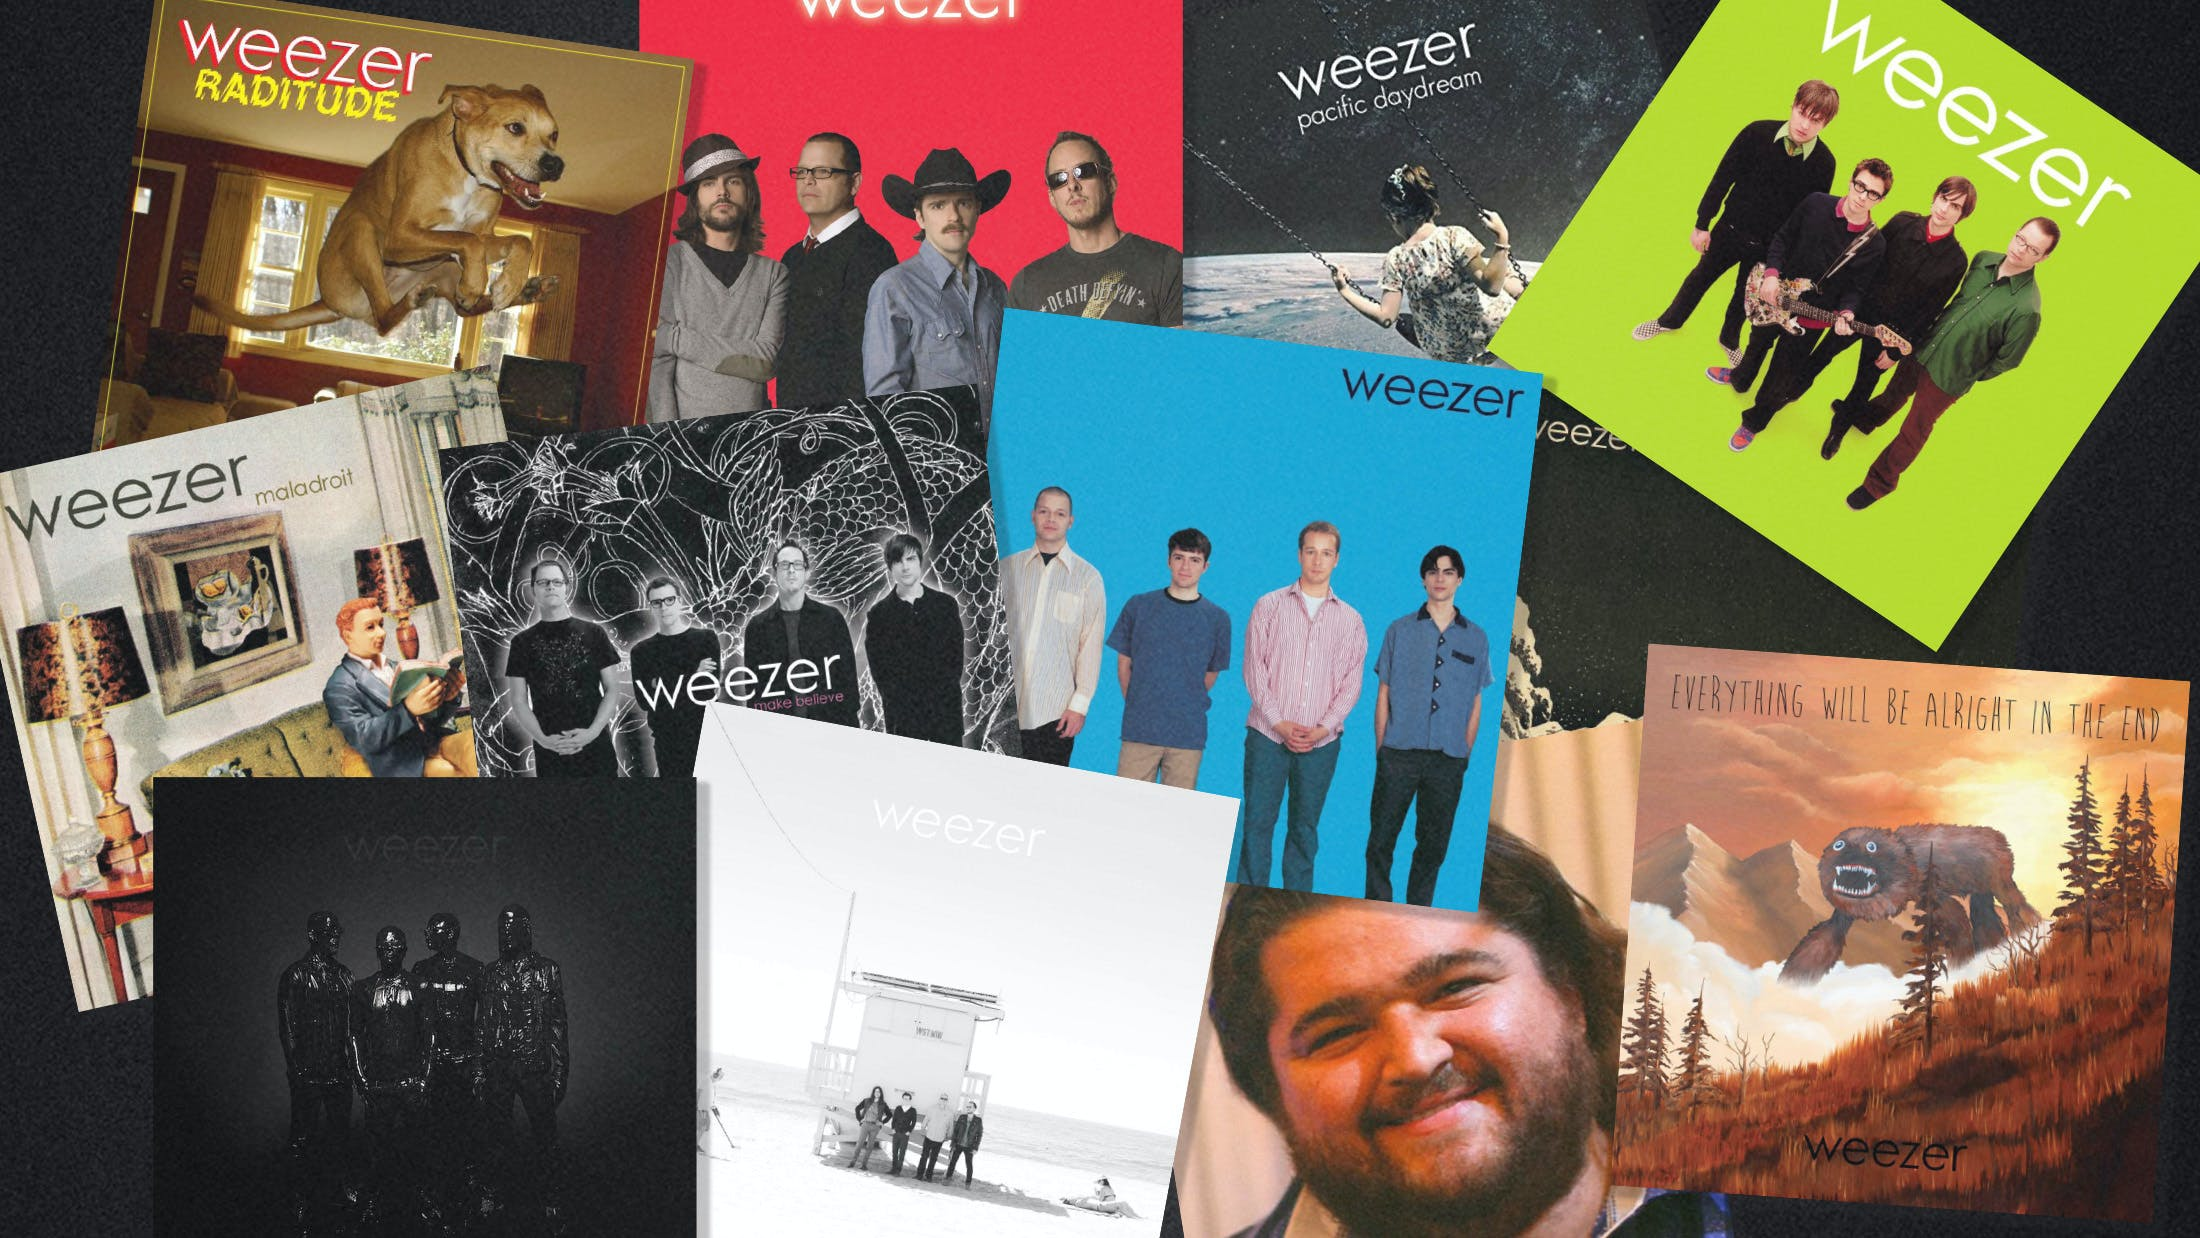 Every Weezer Album Ranked From Worst To Best